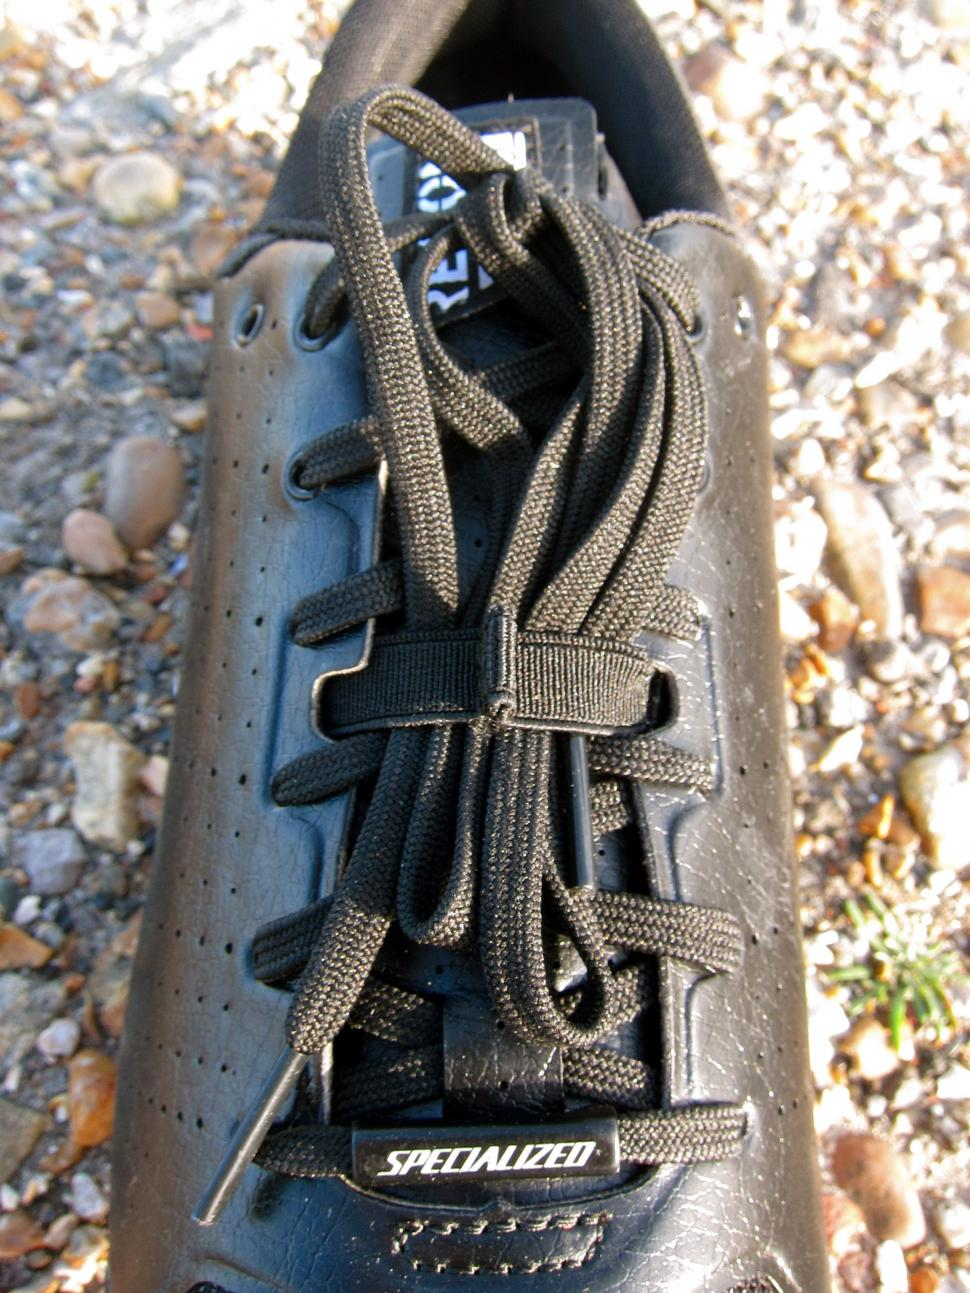 Specialized Recon Mixed Terrain Shoes - Laces.jpg